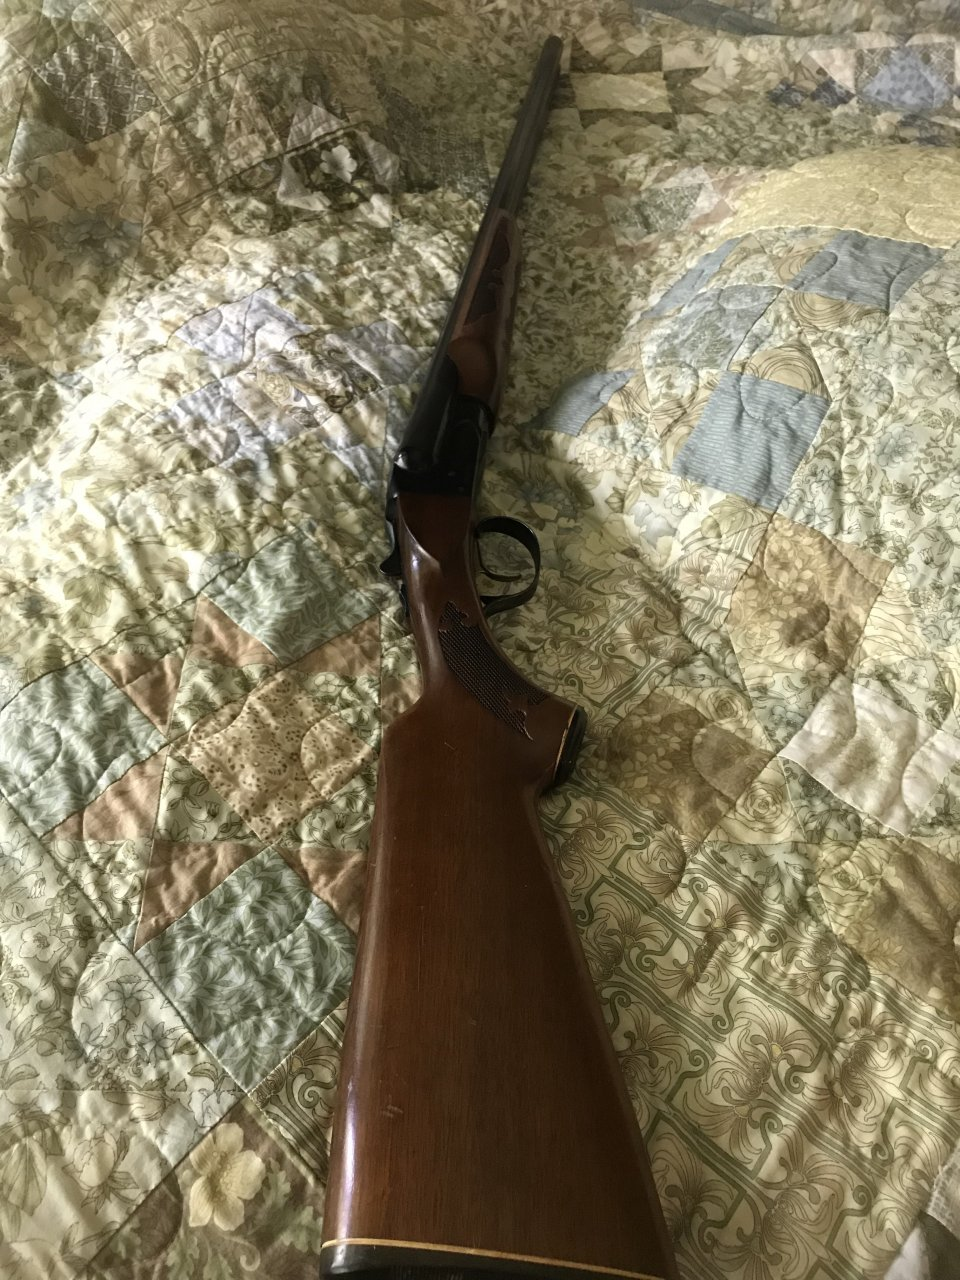 I have a Fox Model B 12 gauge double barrel shotgun with single trigger.  How do I find it's worth? I am not experienced enough to take the stock off  without ...